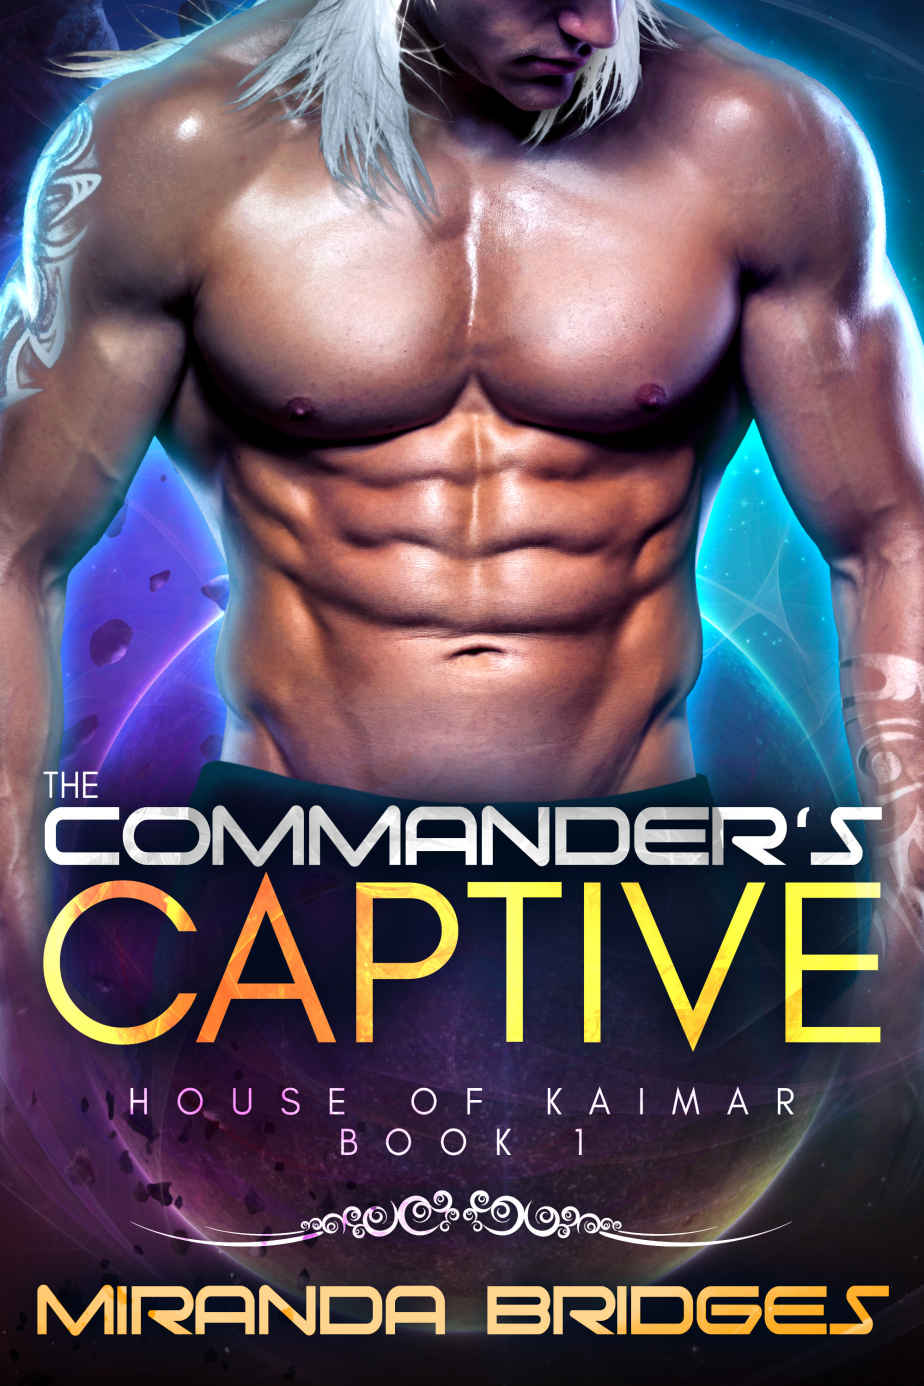 The Commander's Captive cover image